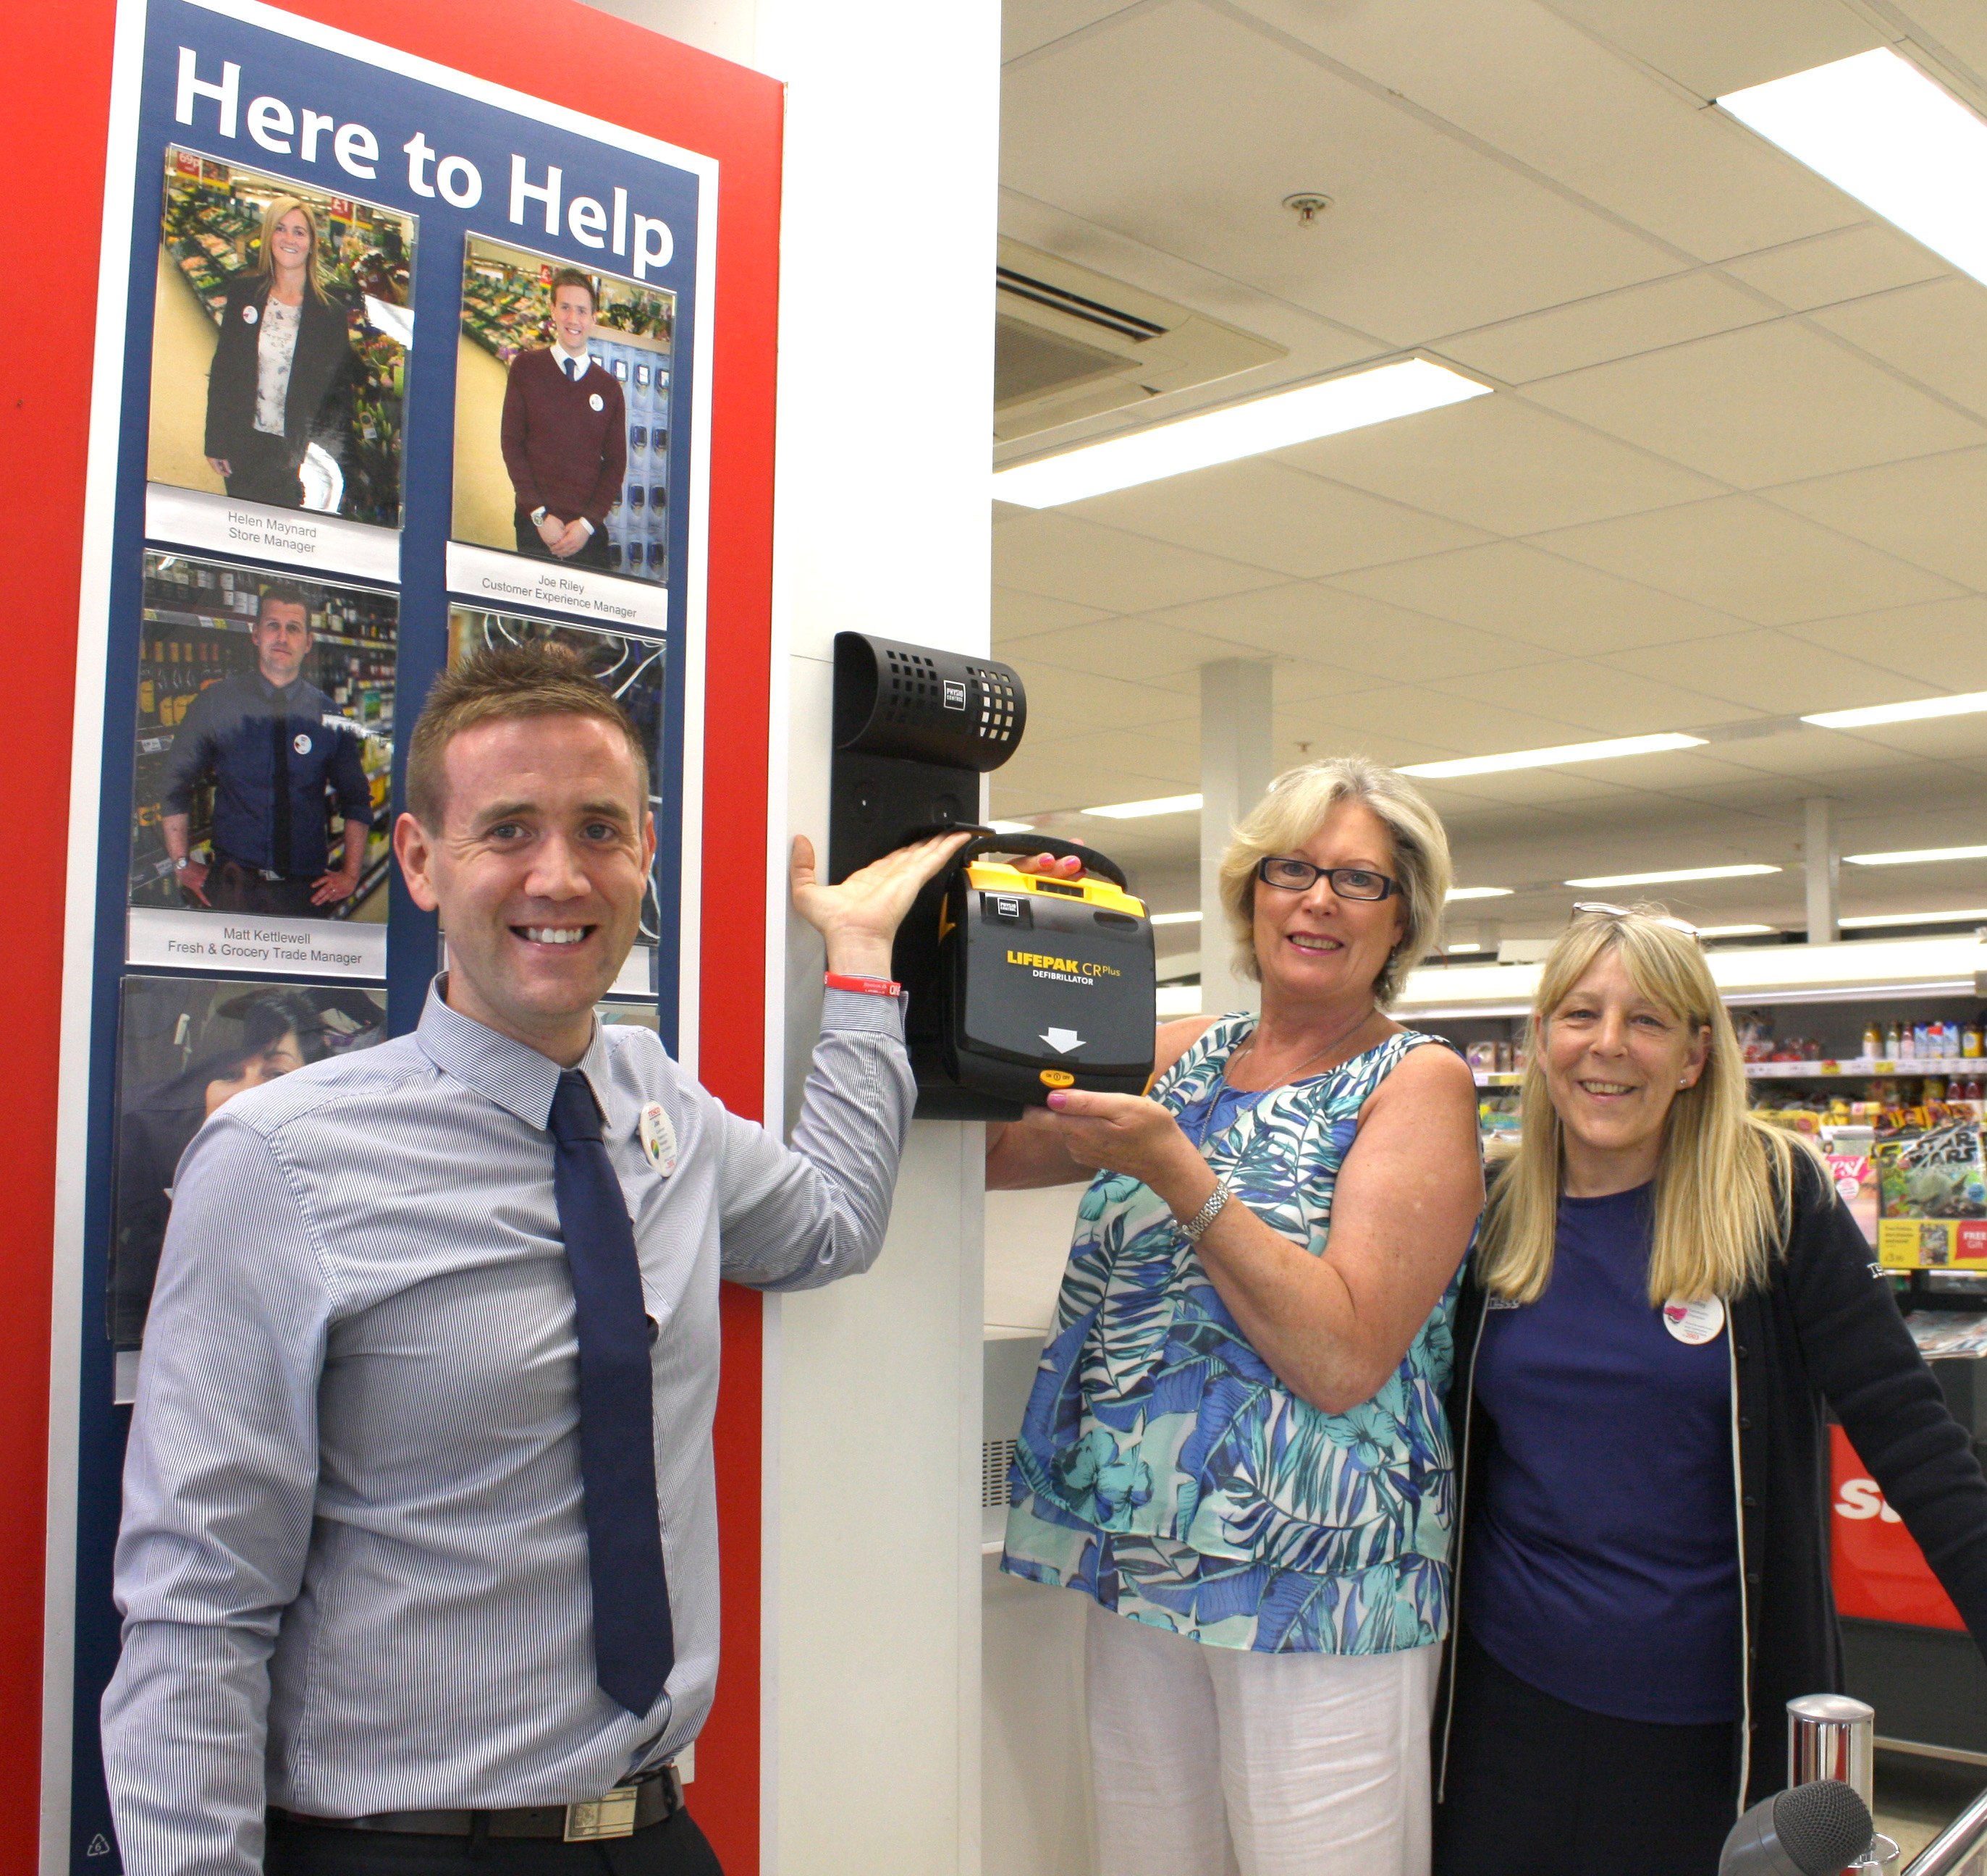 Town's Rotary Club Install Defibrillator in Tesco's